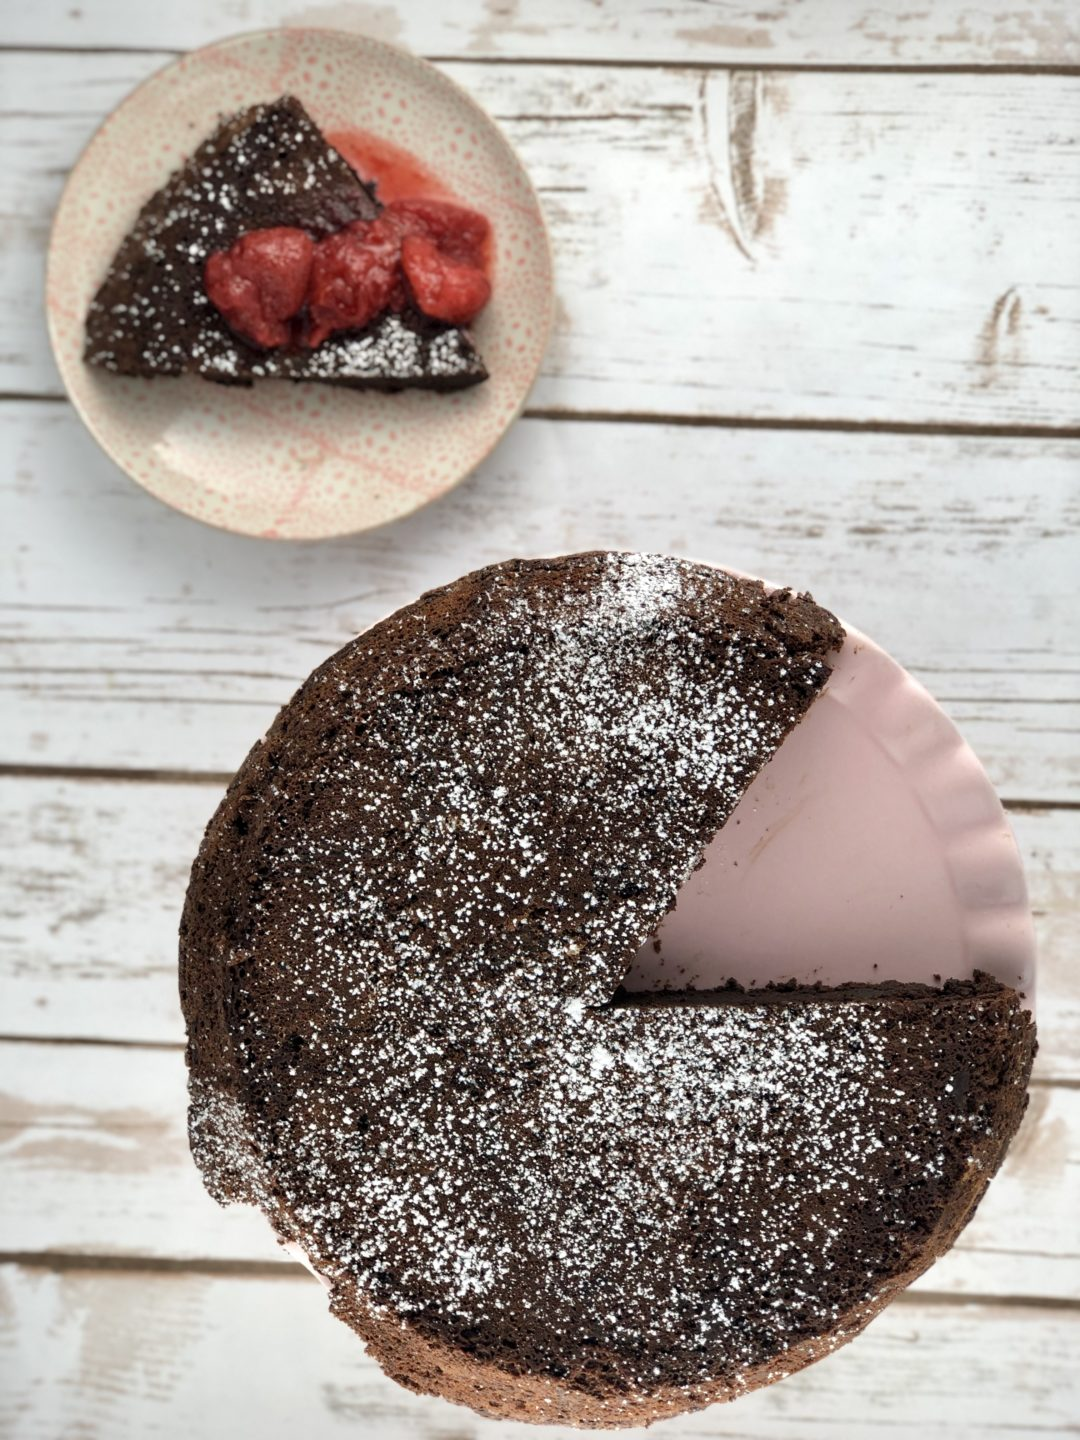 Low FODMAP foods - Chocolate Flourless Cake with Strawberry Sauce